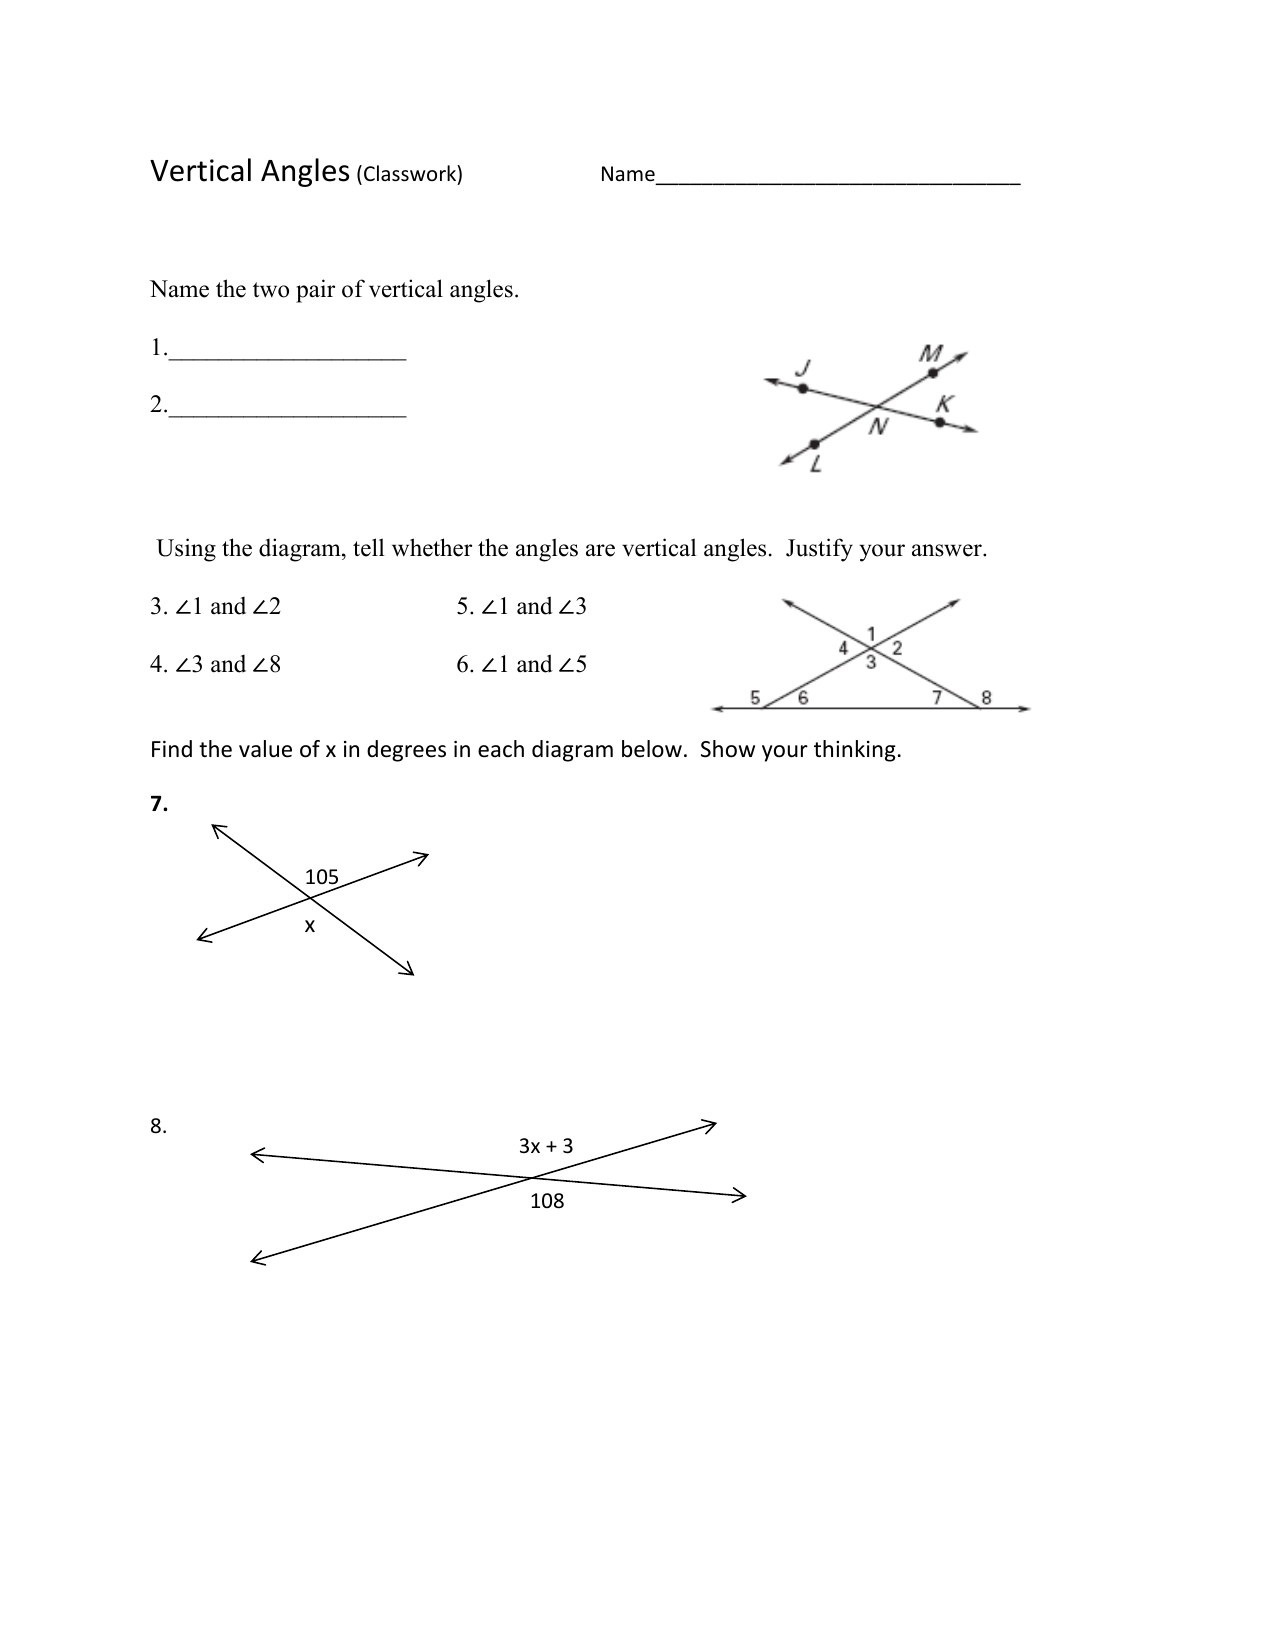 Vertical Angles Worksheet Classwork